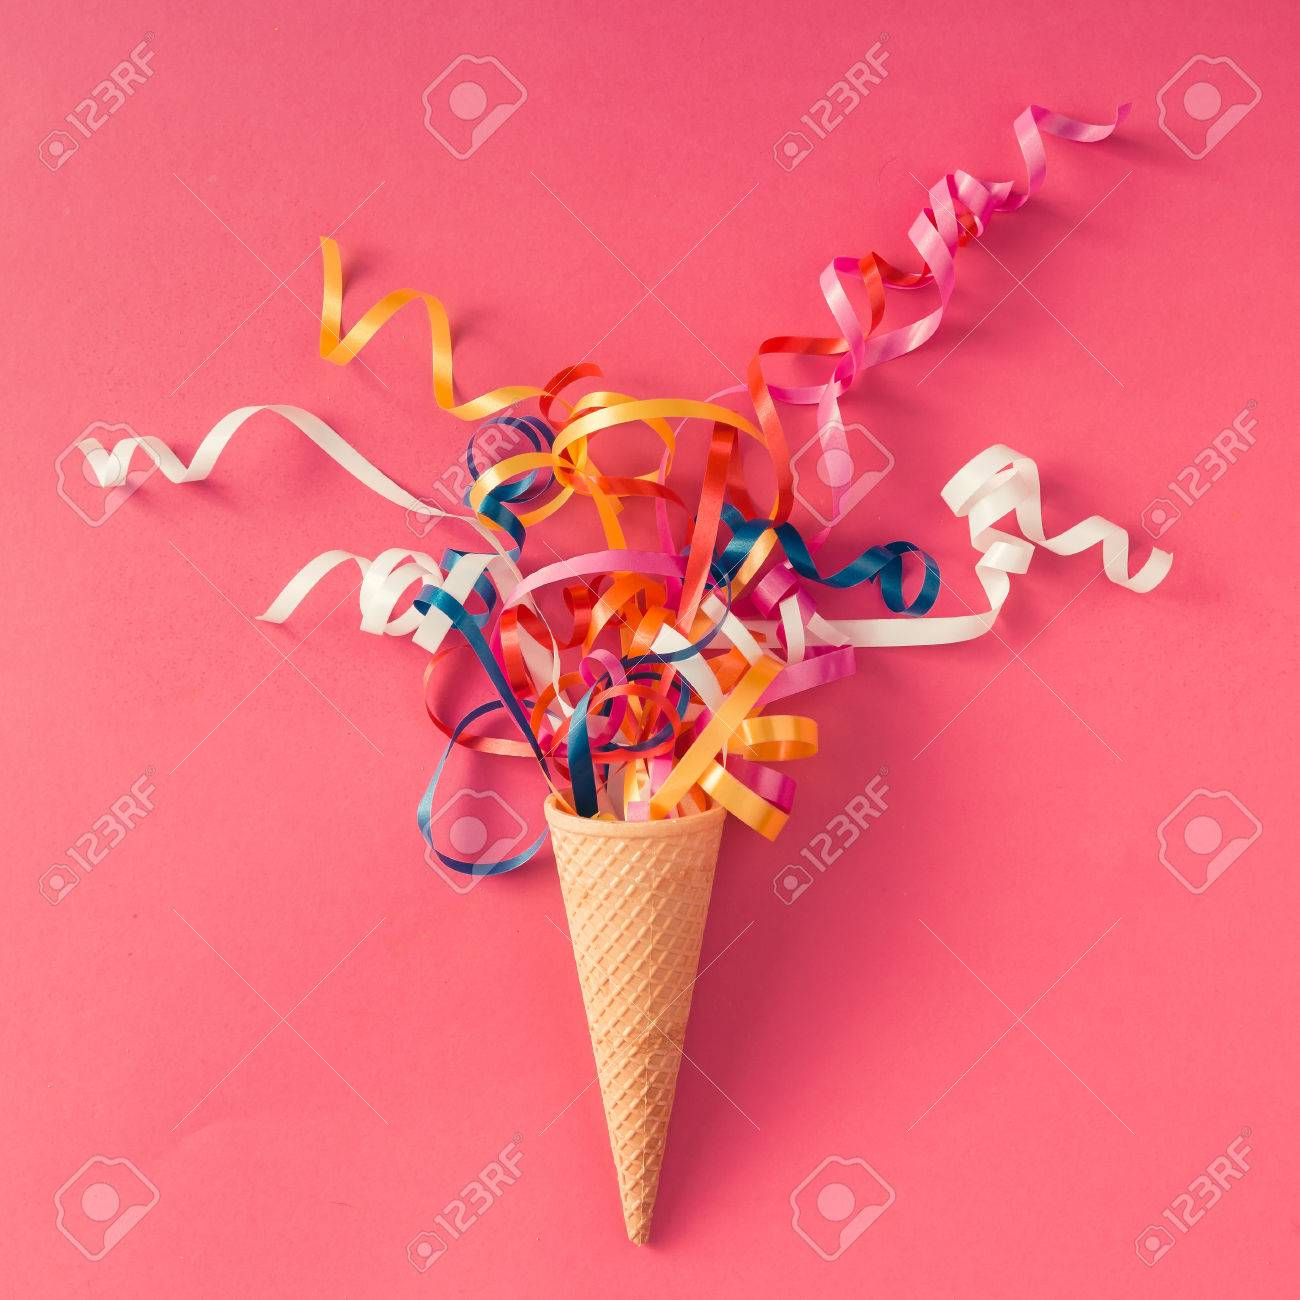 Ice cream cone with colorful party streamers on pink background. Flat lay - 71523109